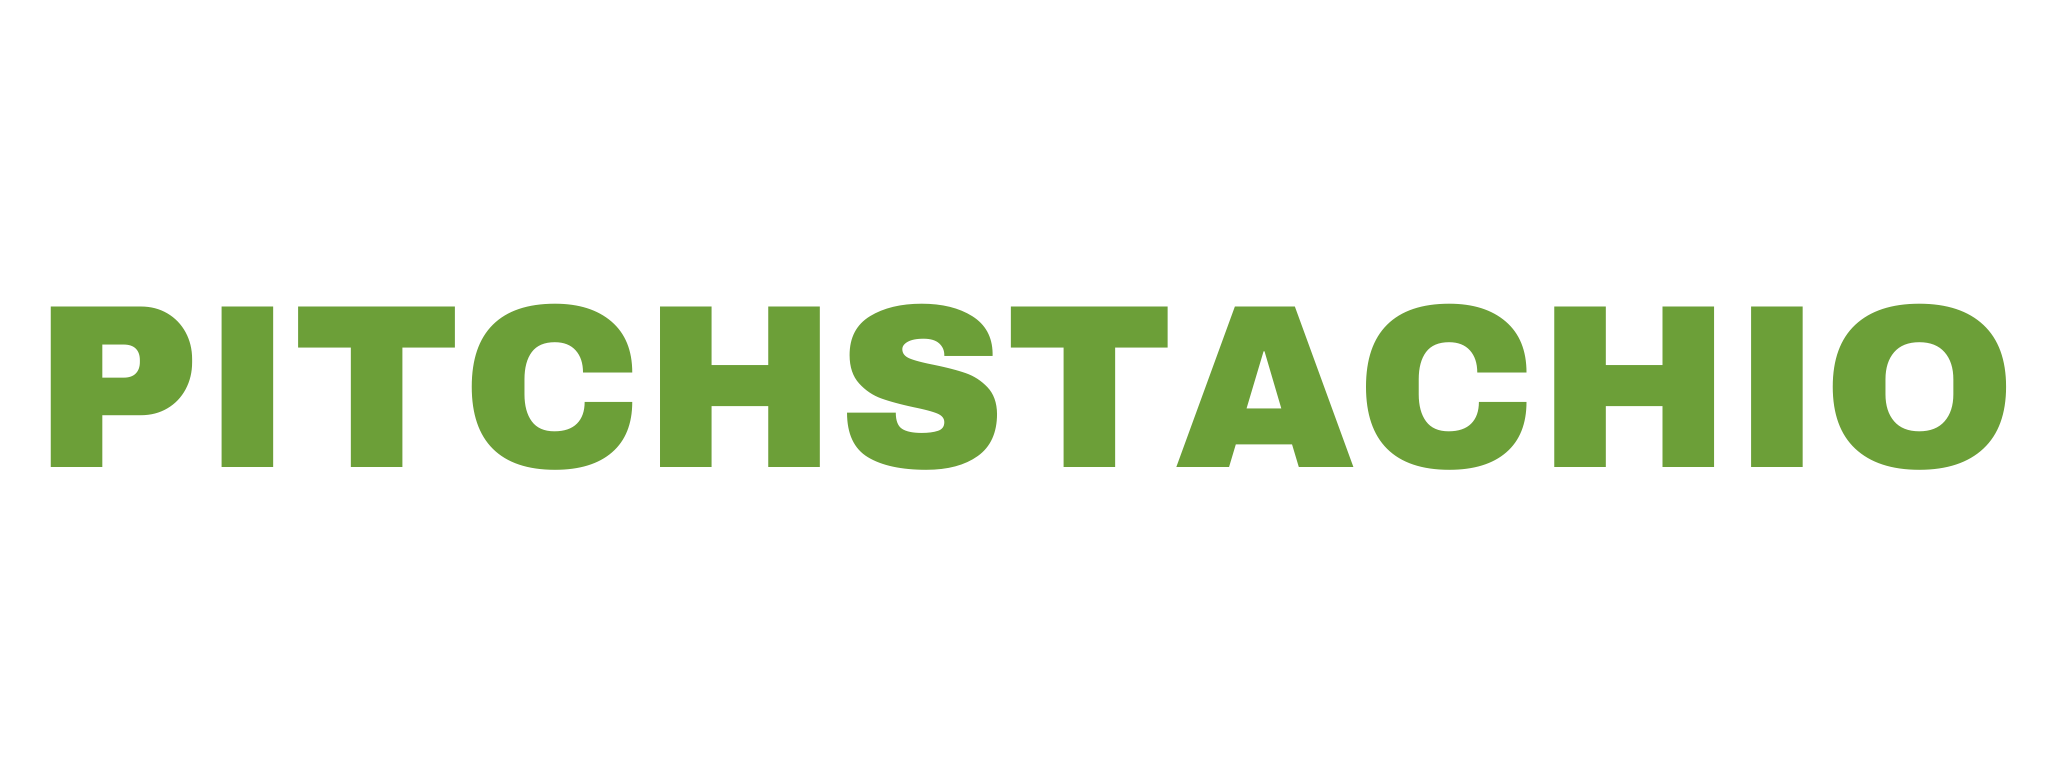 Pitchstachio logo